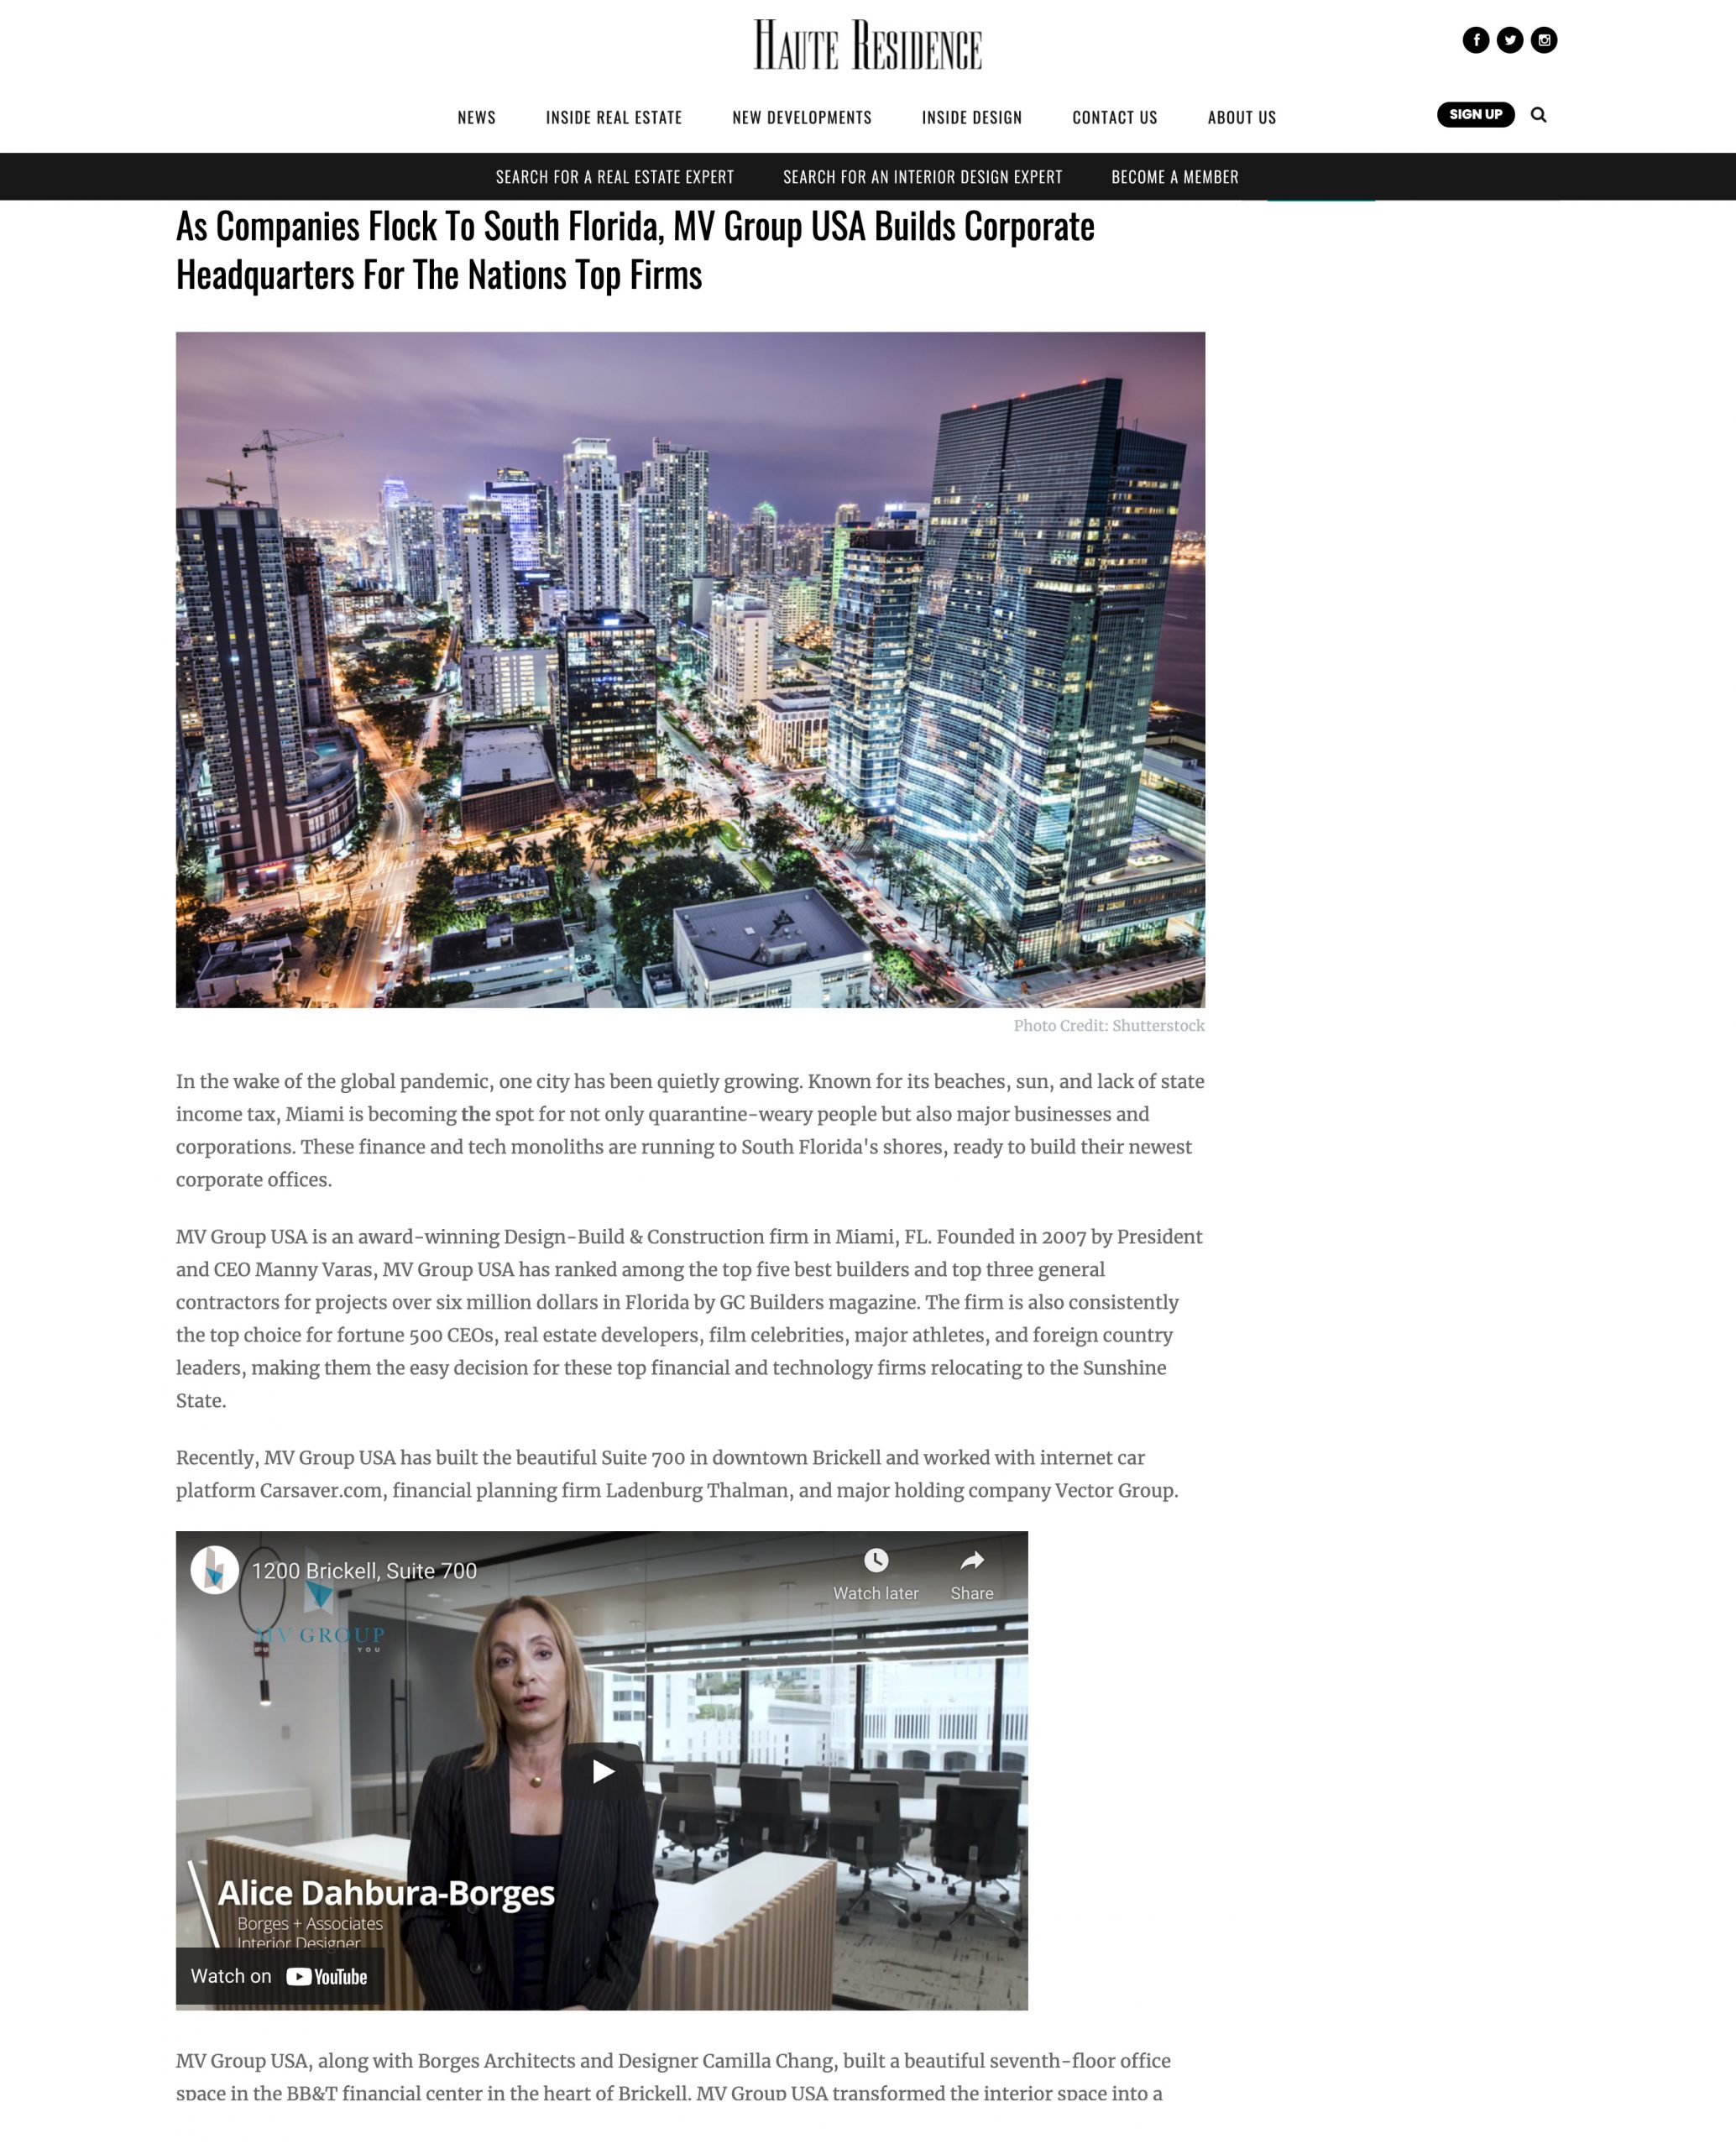 Haute Residence – MV Group USA Builds Corporate Headquarters For The Nations Top Firms